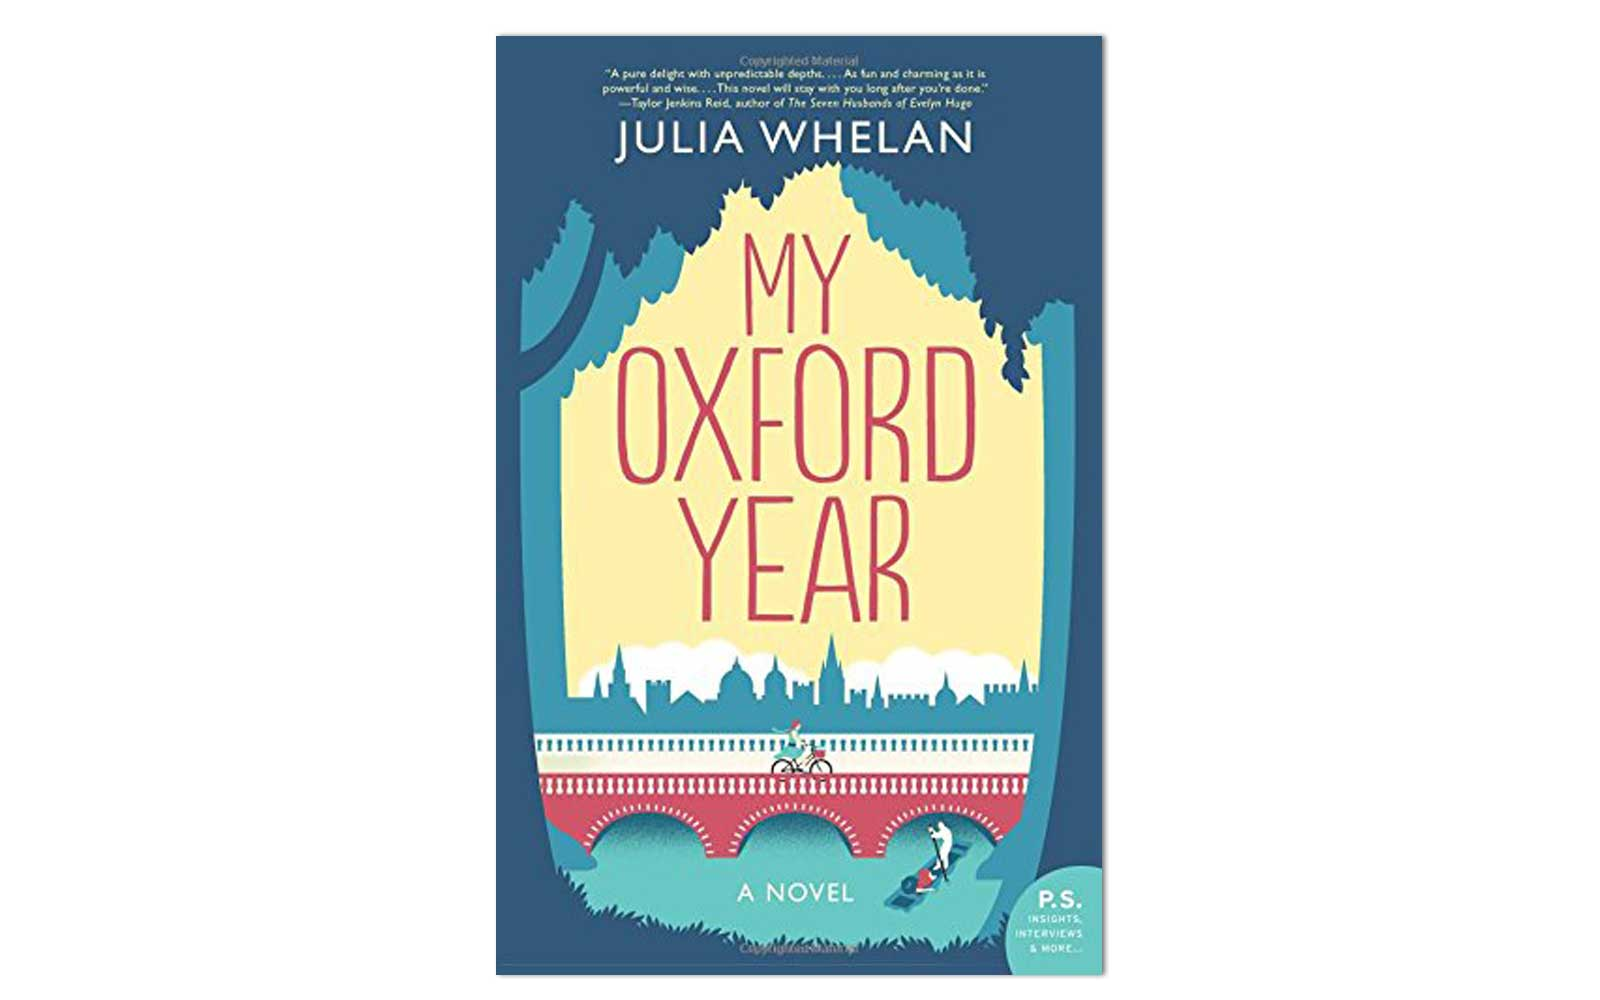 My Oxford Year by Julia Whelan (William Morrow Paperbacks, Out April 24)